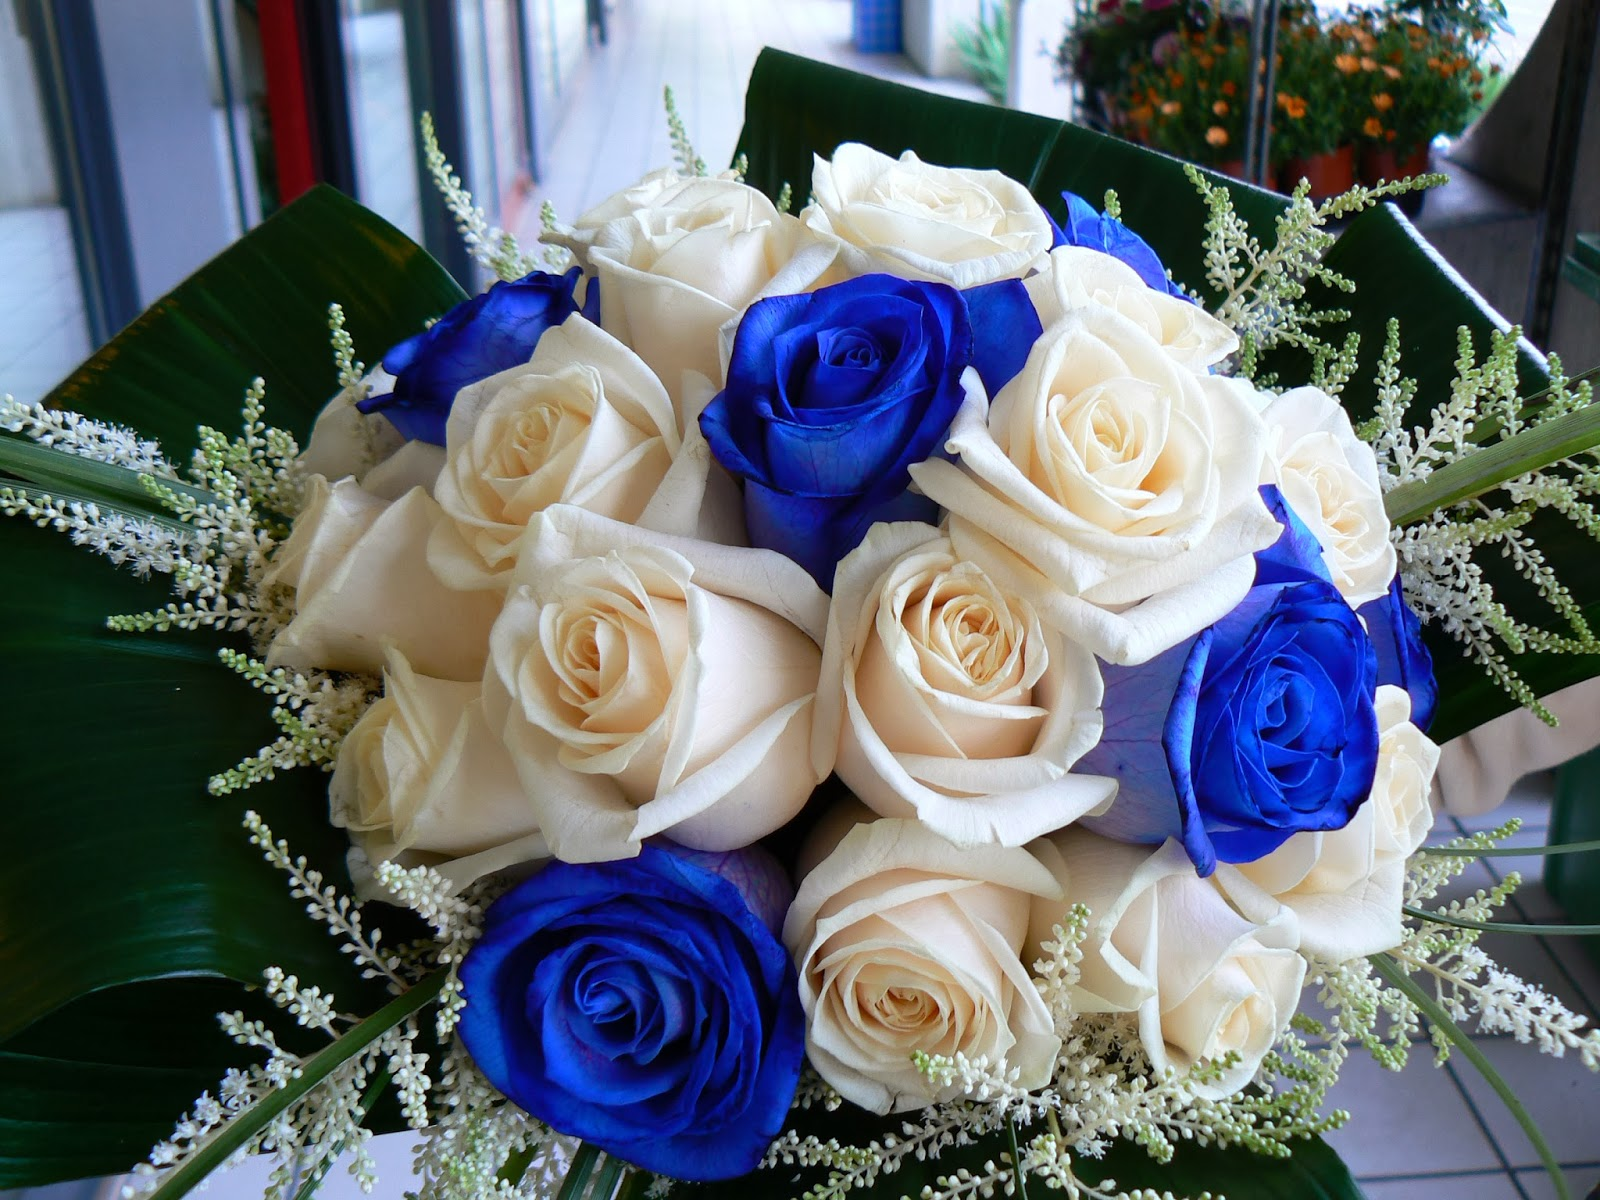 Matrimonio In Blu E Bianco : Incanti wedding and event creations in blue